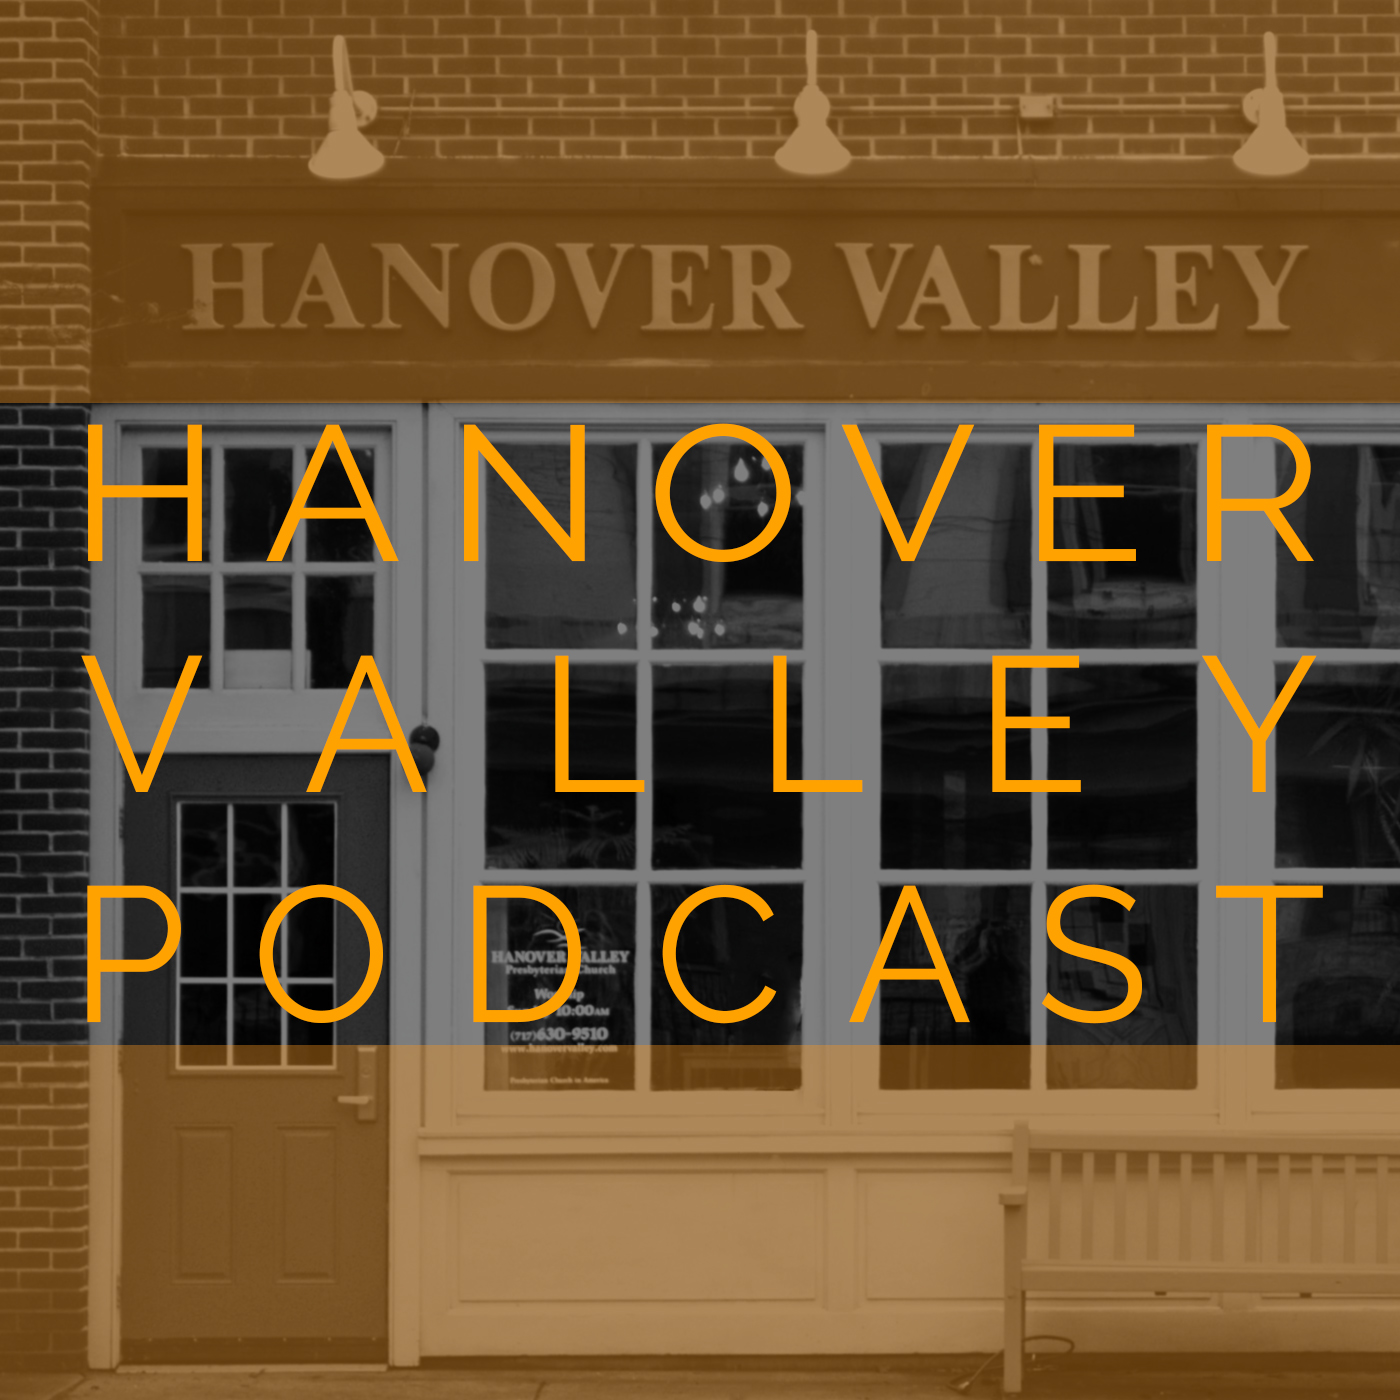 Podcast - Hanover Valley Presbyterian